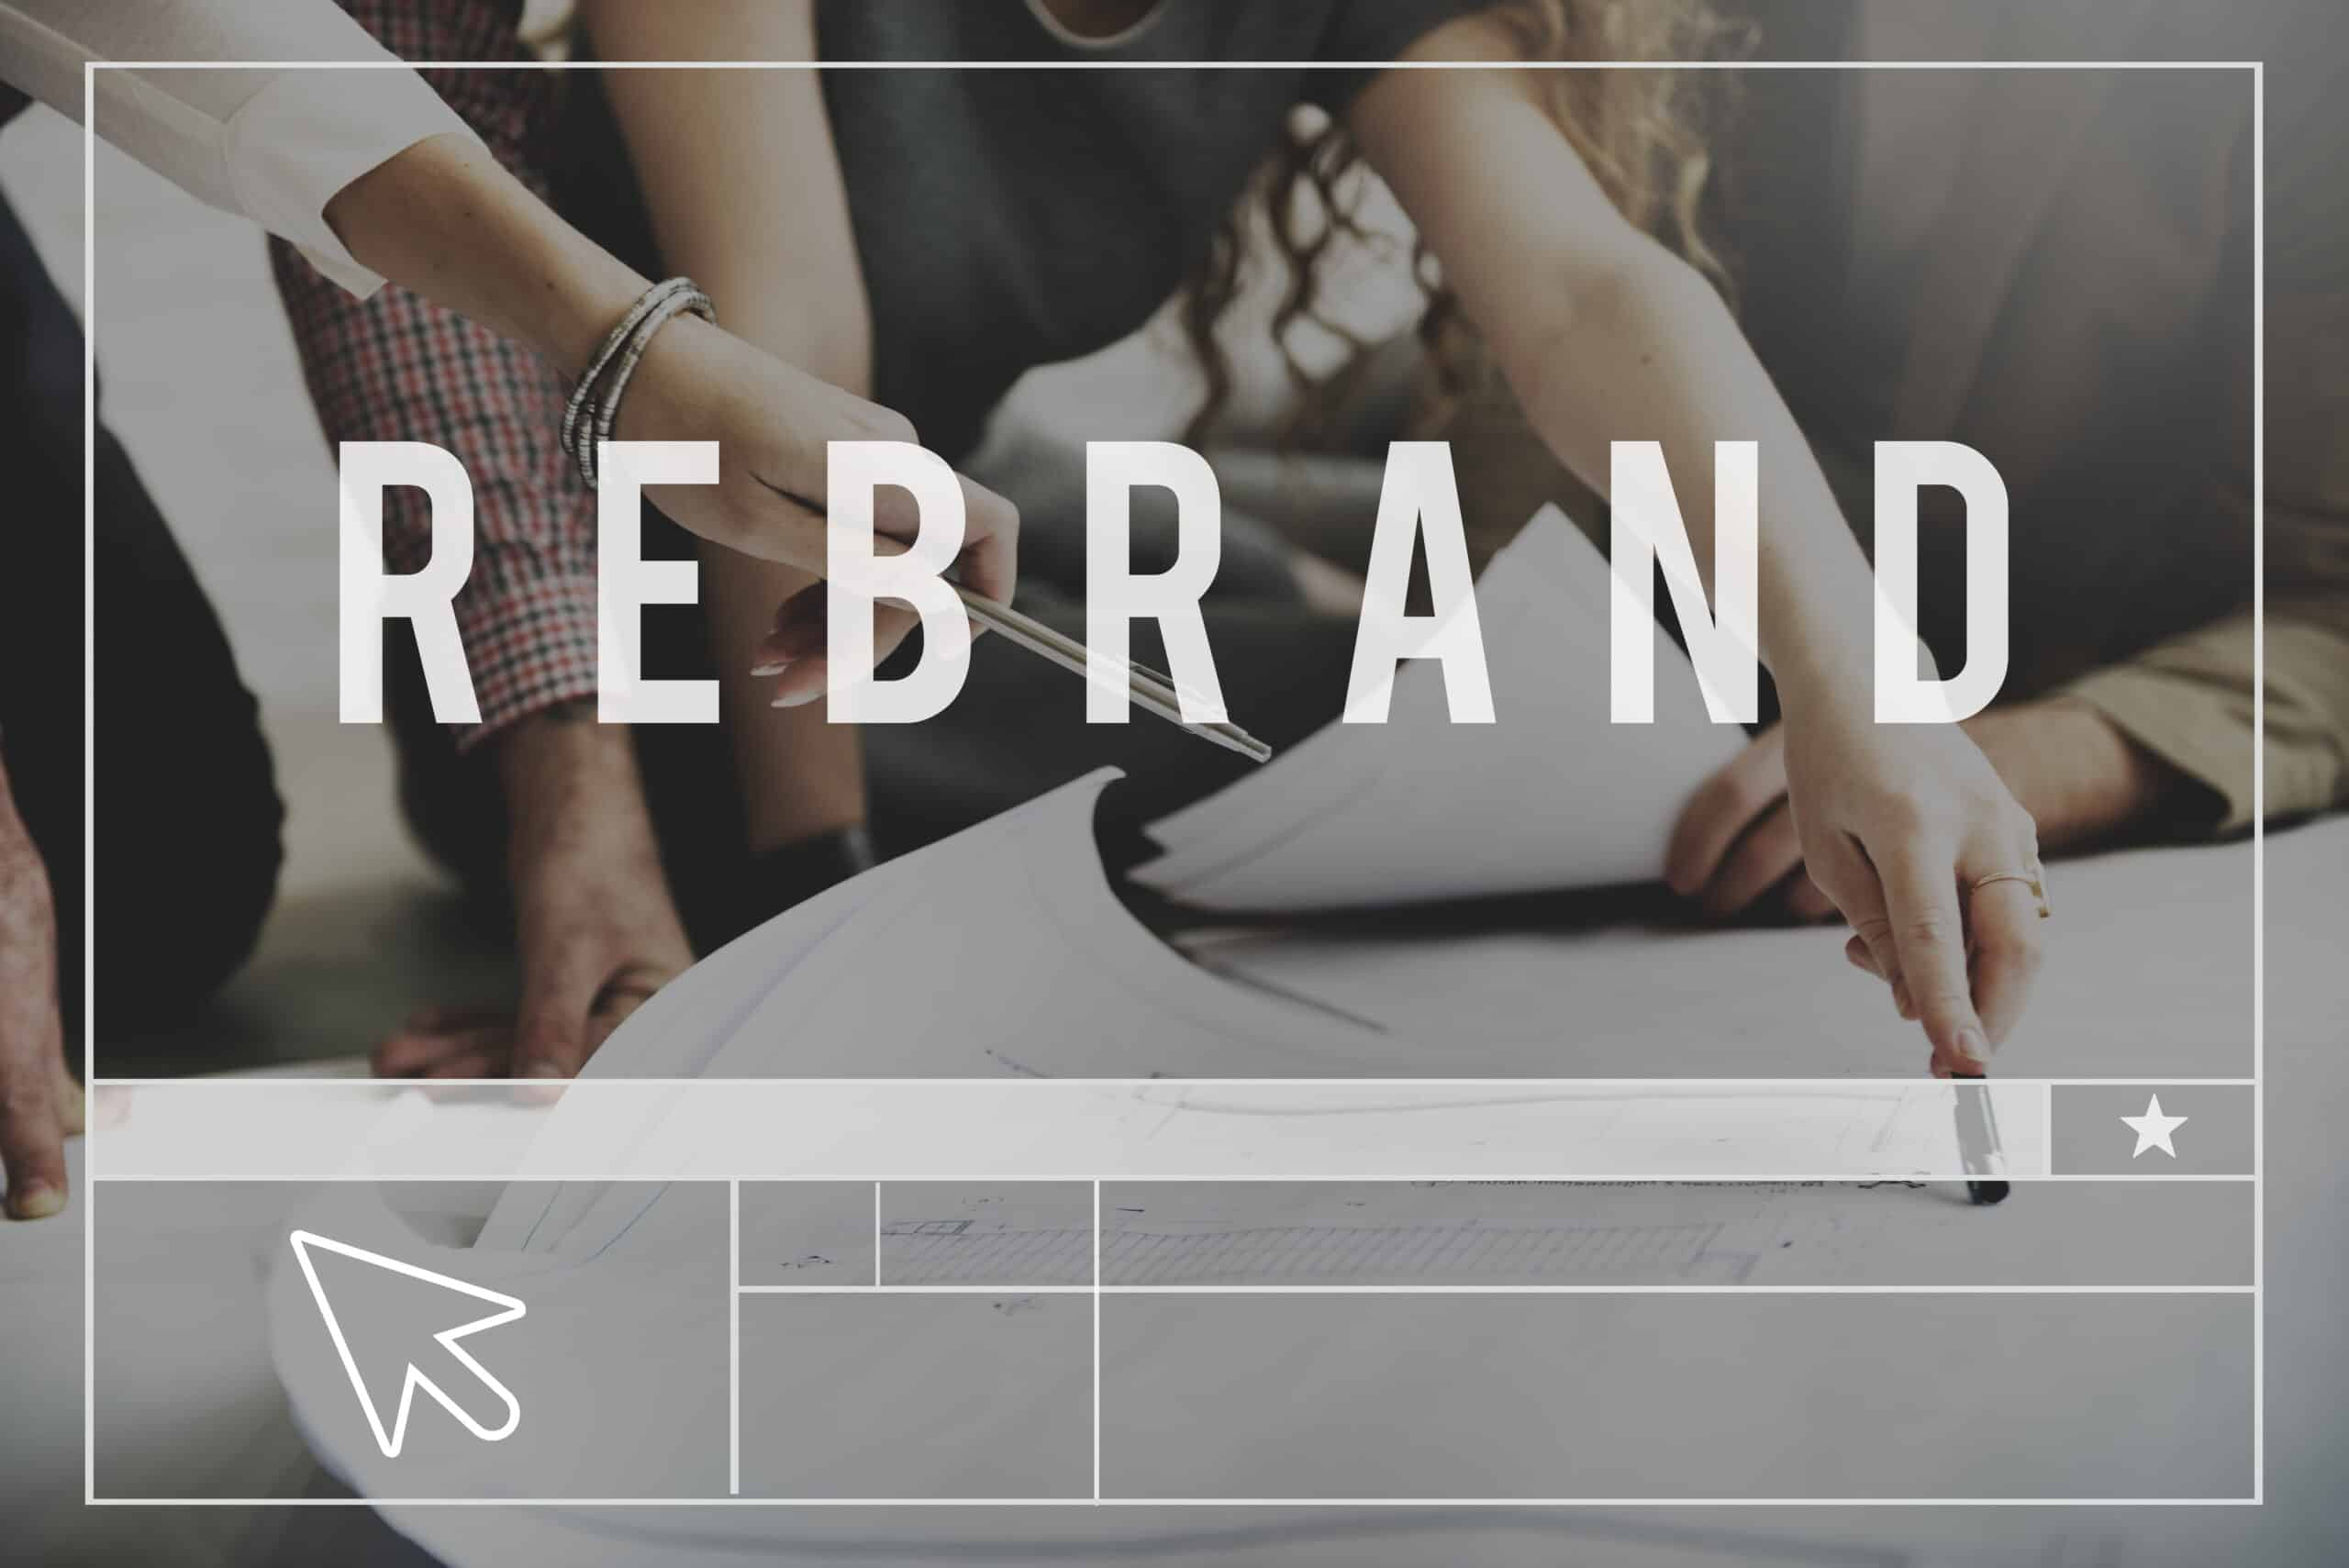 Rebranding your business to improve its marketability